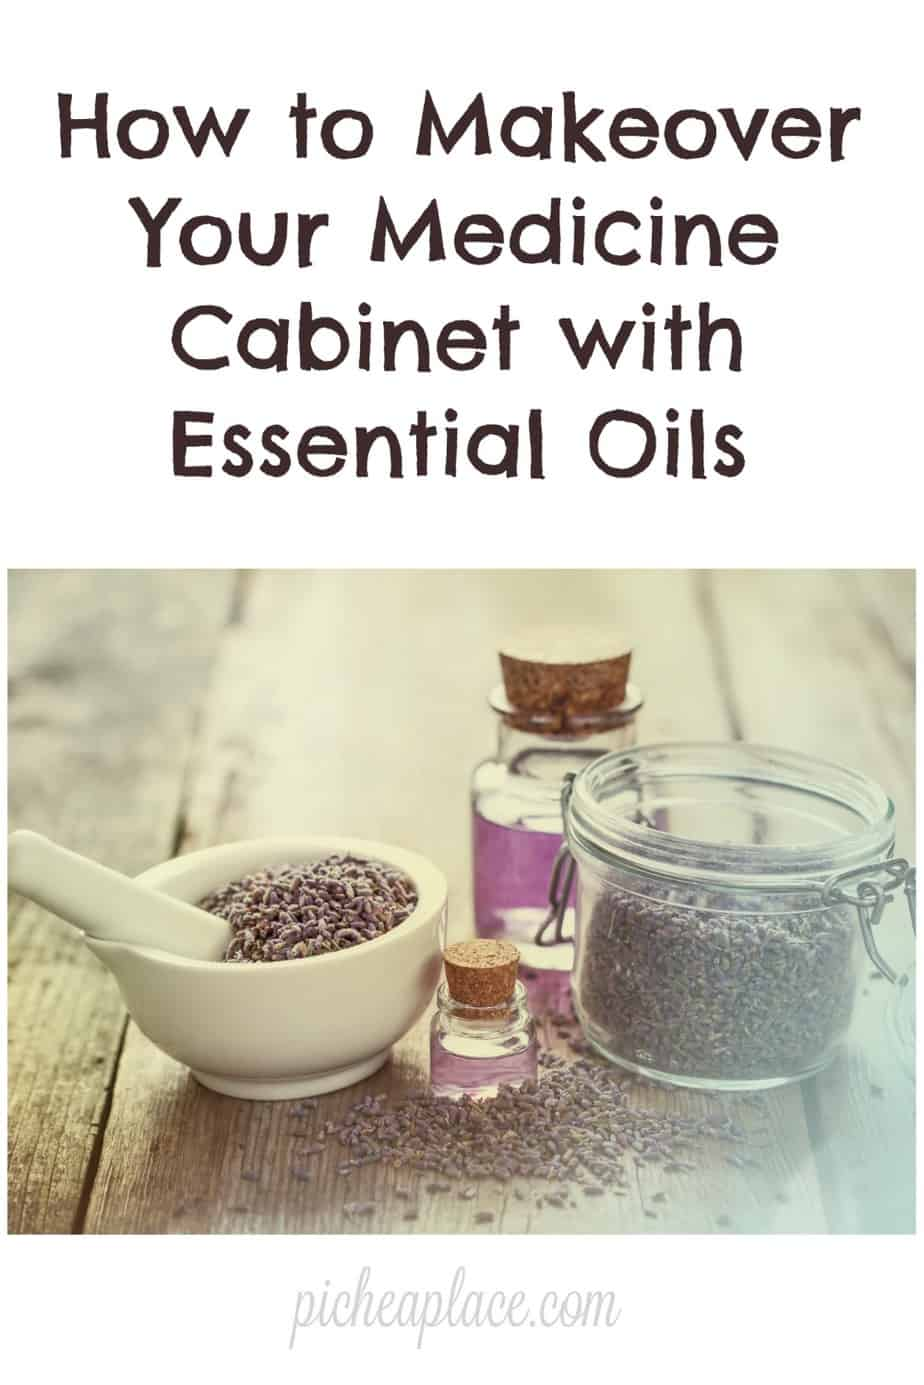 How to Makeover Your Medicine Cabinet with Essential Oils